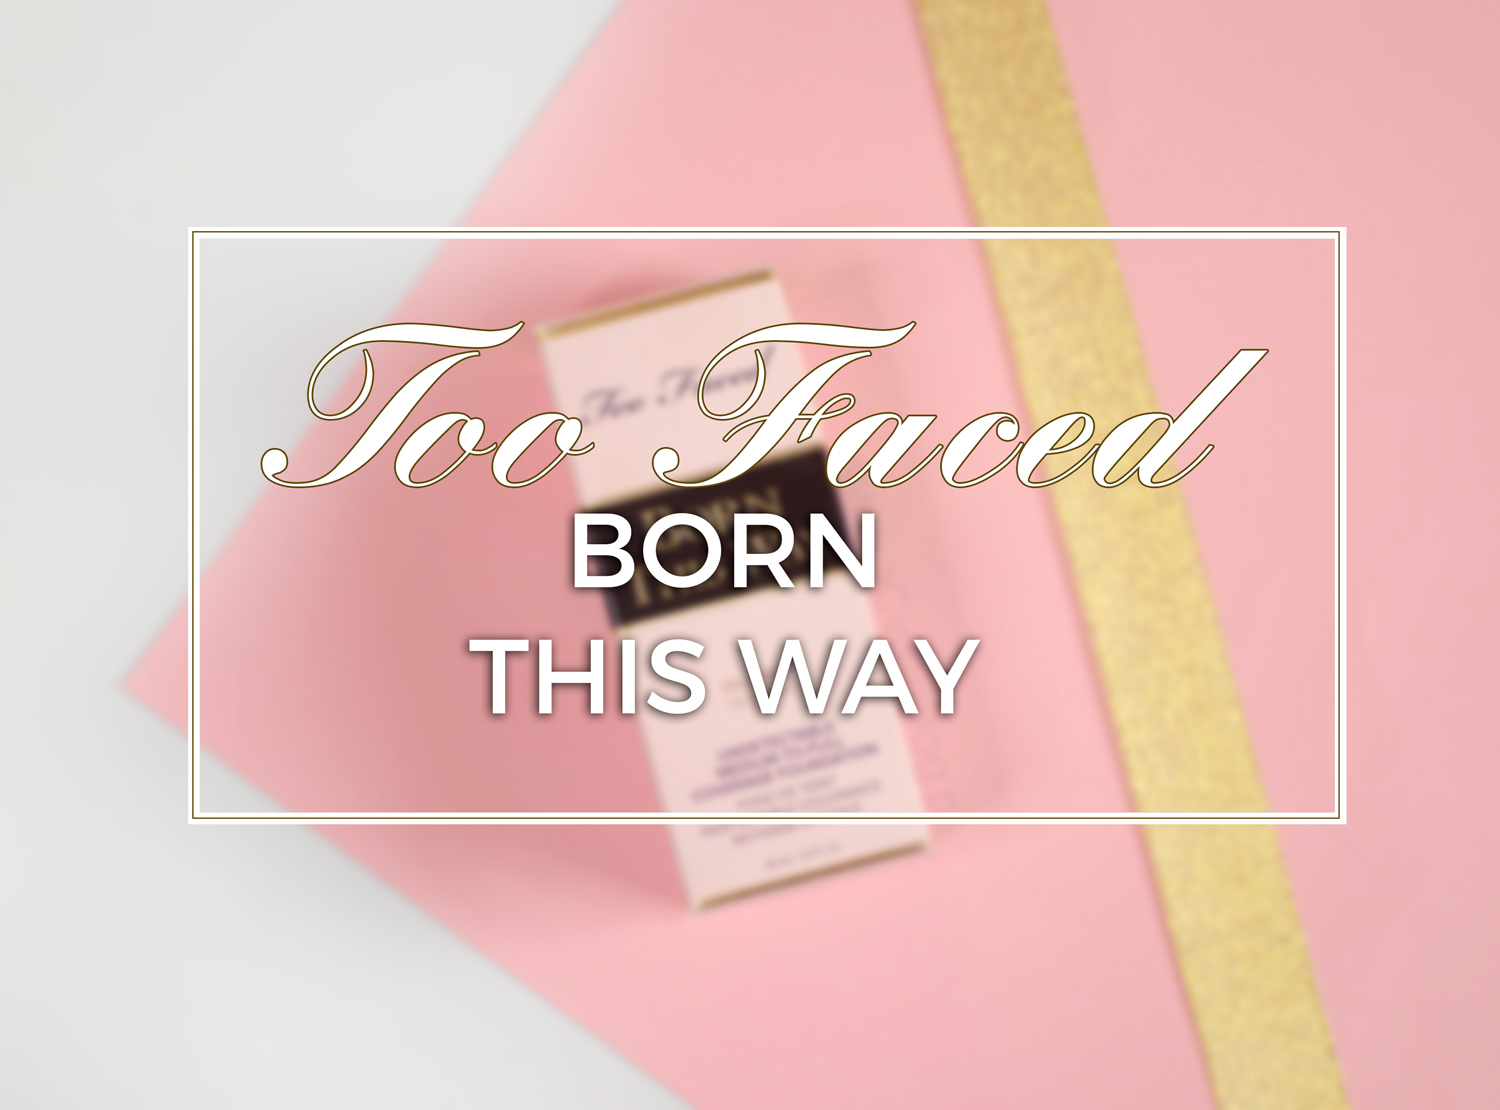 Too faced Born: This Way